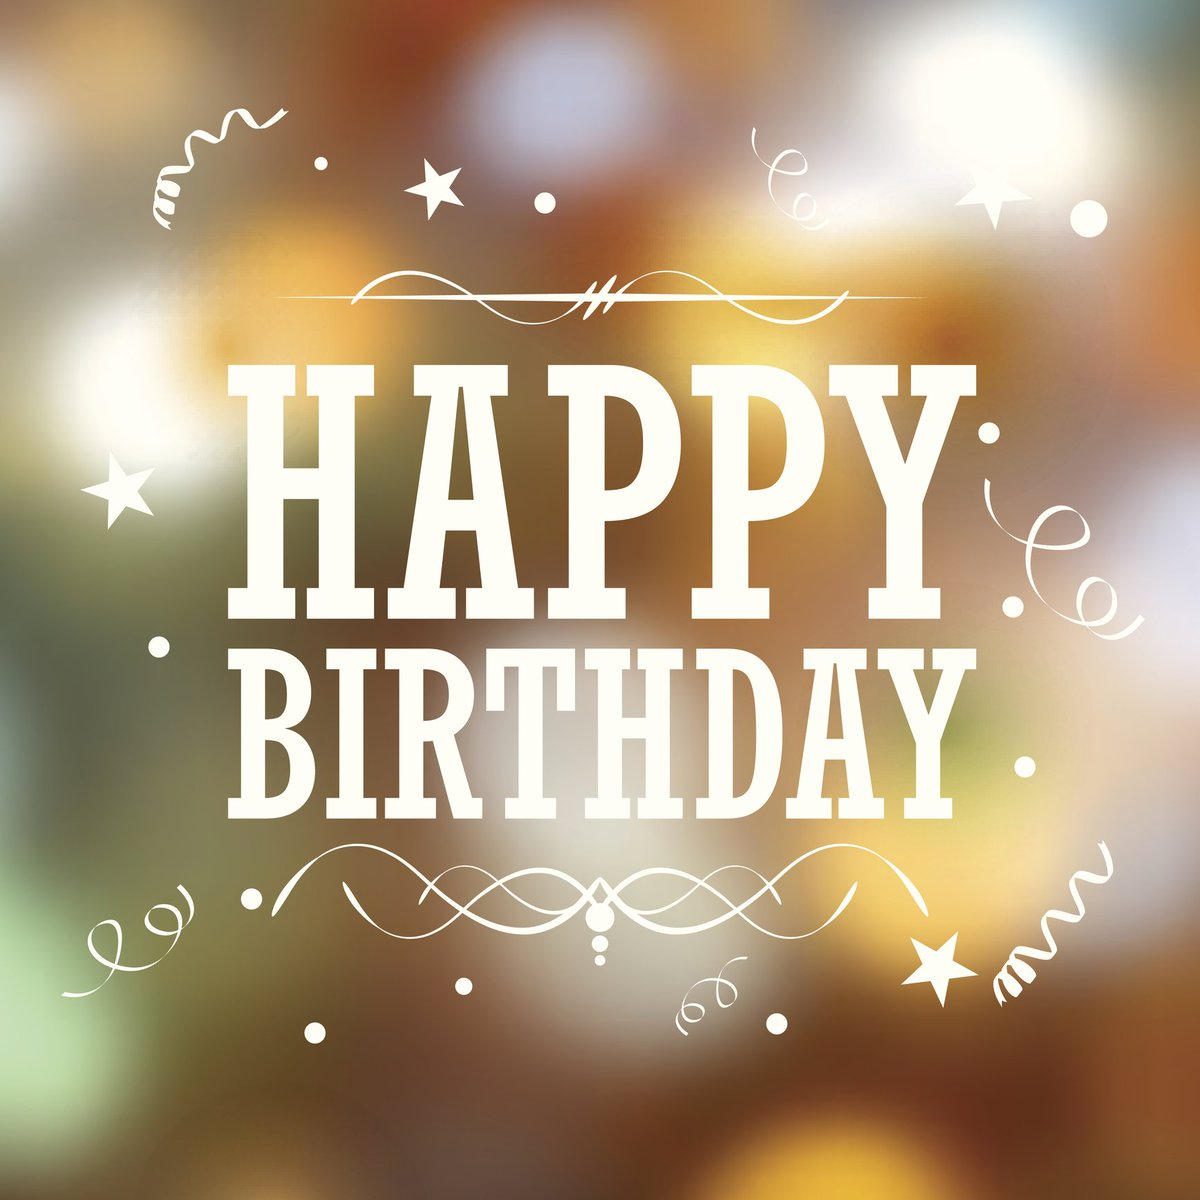 mcg on twitter happy belated birthday diane we hope you enjoyed your special day yesterday and we appreciate everything you do